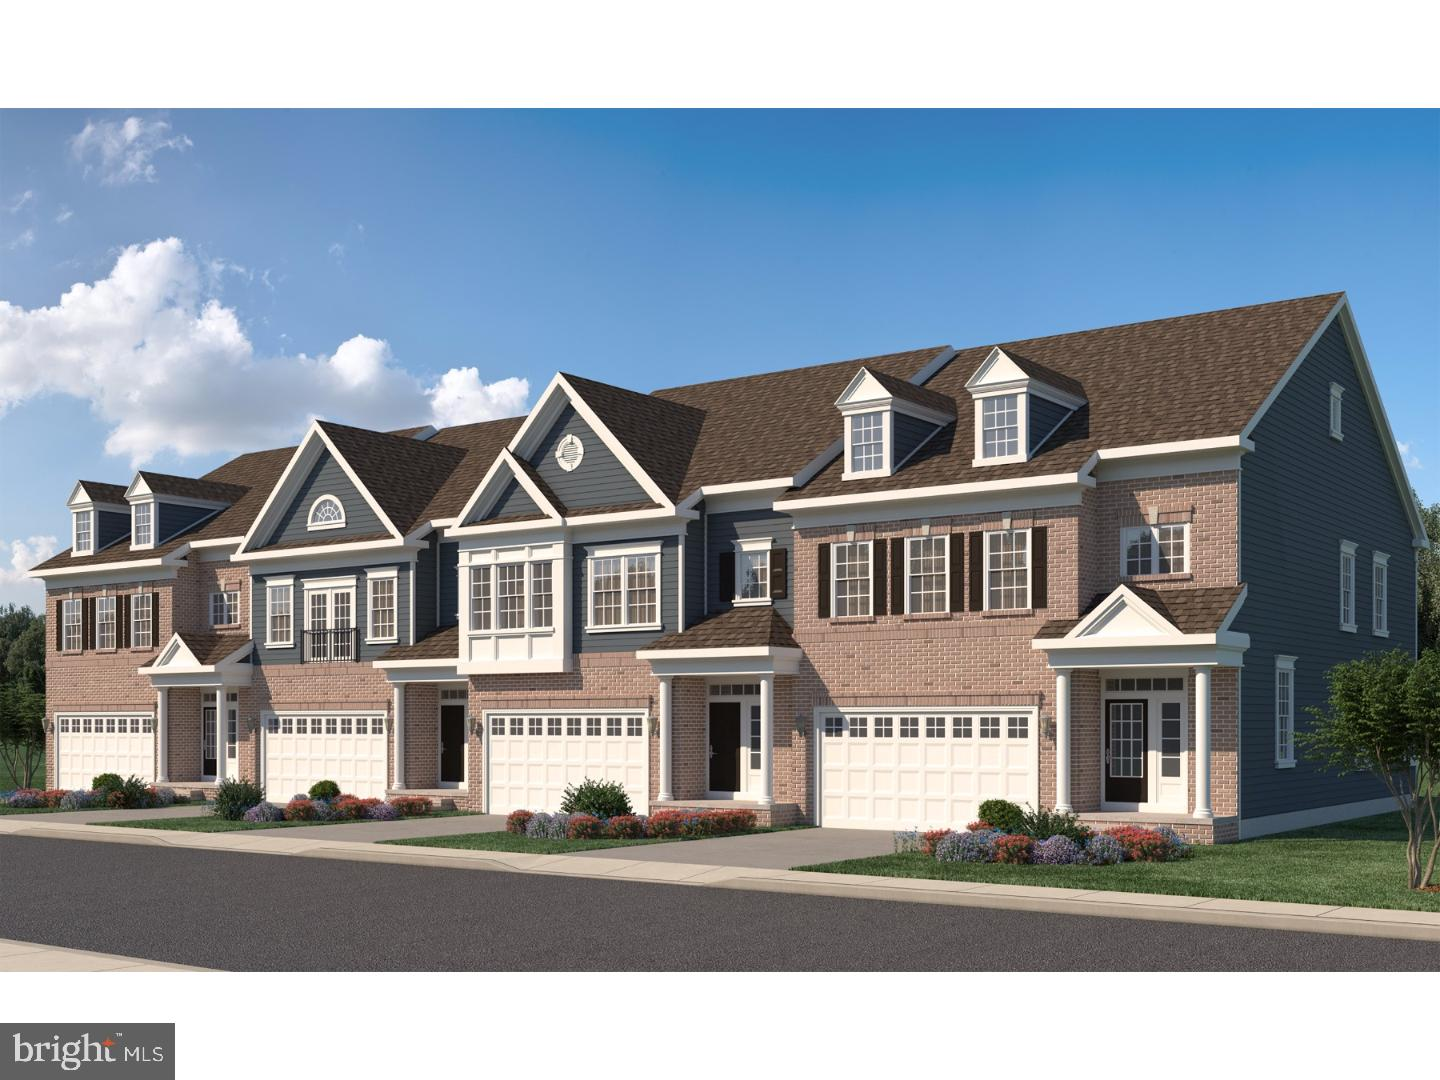 "LOT -  61 -   Please call for information:  302-407-6630       VISIT MODEL HOME - OPEN BY APPOINTMENT ONLY    - 24 hour advance notice.                                                                                                  Blenheim Homes offers a rare opportunity to build a new home in Northern Delaware in its newest community.  Westhampton, is just minutes away from Downtown Hockessin, a town full of locally-owned shops, restaurants, parks and recreation and within the Red Clay Consolidated School District.  This 40-acre, 95-home community is designed to enjoy twenty acres of dedicated open space and wooded  views of tall trees.  Each home offers beautiful views to add to the serenity of your new home.                                                                                                                                                                  **SPRING 2021 DELIVERY - The JAMESPORT is one of four open floorplans; it is a two-story townhome with a full basement with Sunroom.  The expansive owner's suite includes dual walk in closets and separate sinks in the en-suite bath.  Home amenities include: large oversized kitchen island, beautiful selections of granite tops & 42"" cabinets with pantry, tile in laundry and both full baths, and 9' ceilings on all levels. Expand the Jamesport with an added sunroom or finish lower level.  Let Blenheim Homes make your dream home become a reality. ** Visit Westhampton, with its variety of three-bedroom luxury homes; from twin homes with first-floor owner's suite, and 2-story or 3-story townhomes.  This community is desirable in all stages of life, whether you are looking for your first home or your last, enjoy easy access to Delcastle Recreational Park or a short drive to Kennett Square, PA and Longwood Gardens. Photos are of Model Home                                                                                                                                 GPS- 201 Mckennans Chrch Road, Wilmington, DE  19808  -   MODELS ARE OPEN BY APPOINTMENT ONLY - 302-407-6630   -  Please schedule 24 hrs. in advance                                                                                                                                                                                                                                                       Notice:  At Blenheim Homes, our top priority is the health and safety of our homeowners, visitors and team members. In an effort to protect everyone who enters our doors and the community at large, sales teams are effective immediately, be working remotely instead of at our on-site sales centers. We are still regularly monitoring our phone lines and are offering in-person and virtual appointments, but ask that they be scheduled 24 hours in advance"